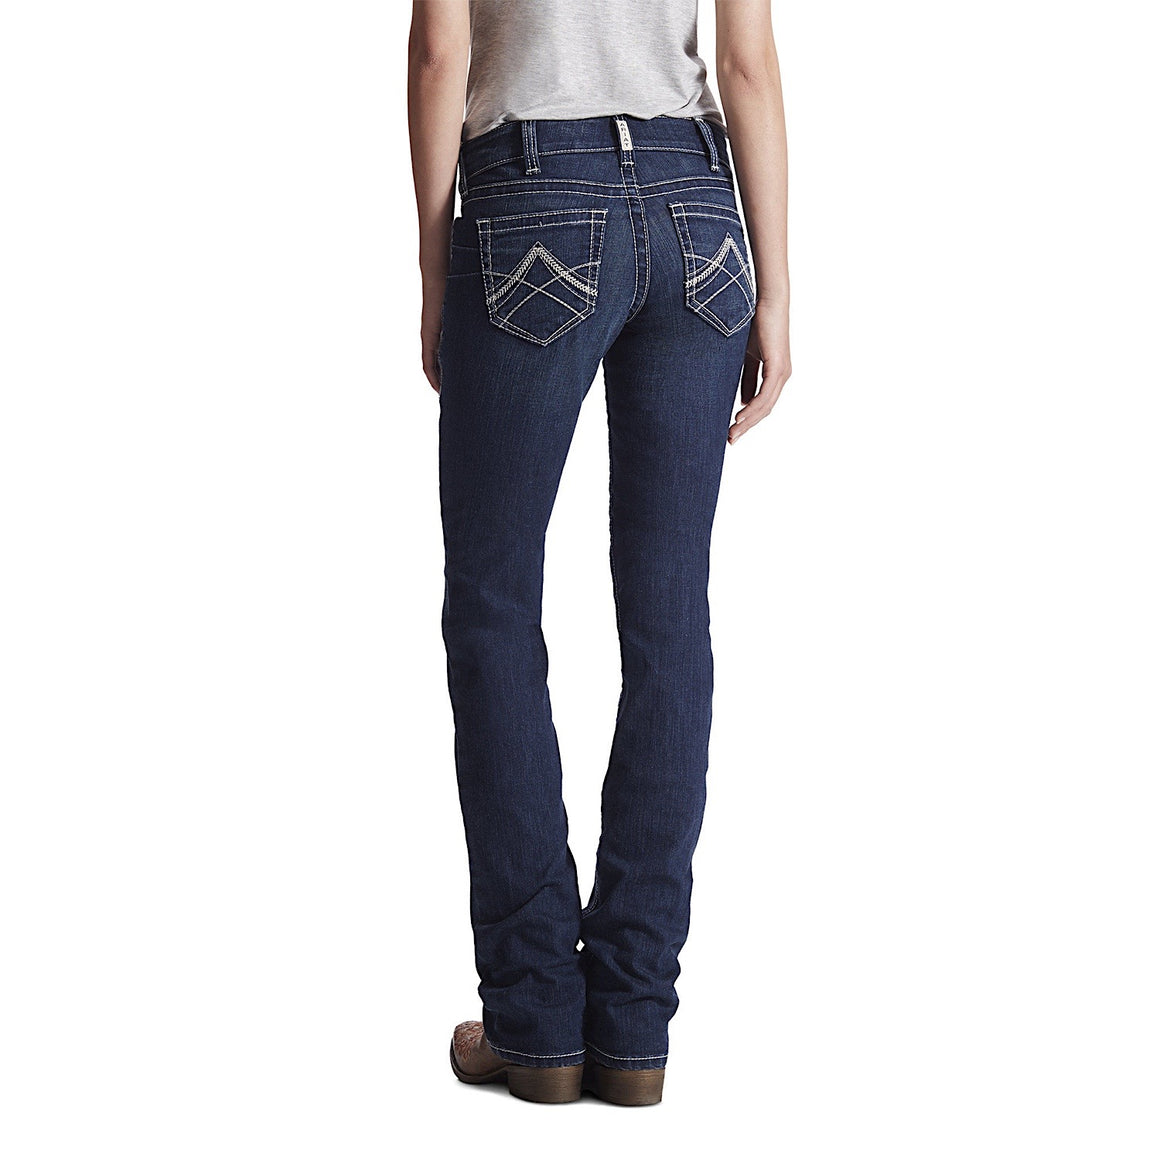 Ariat Womens R.E.A.L Mid Rise Icon Stackable Straight Leg Jean Ocean